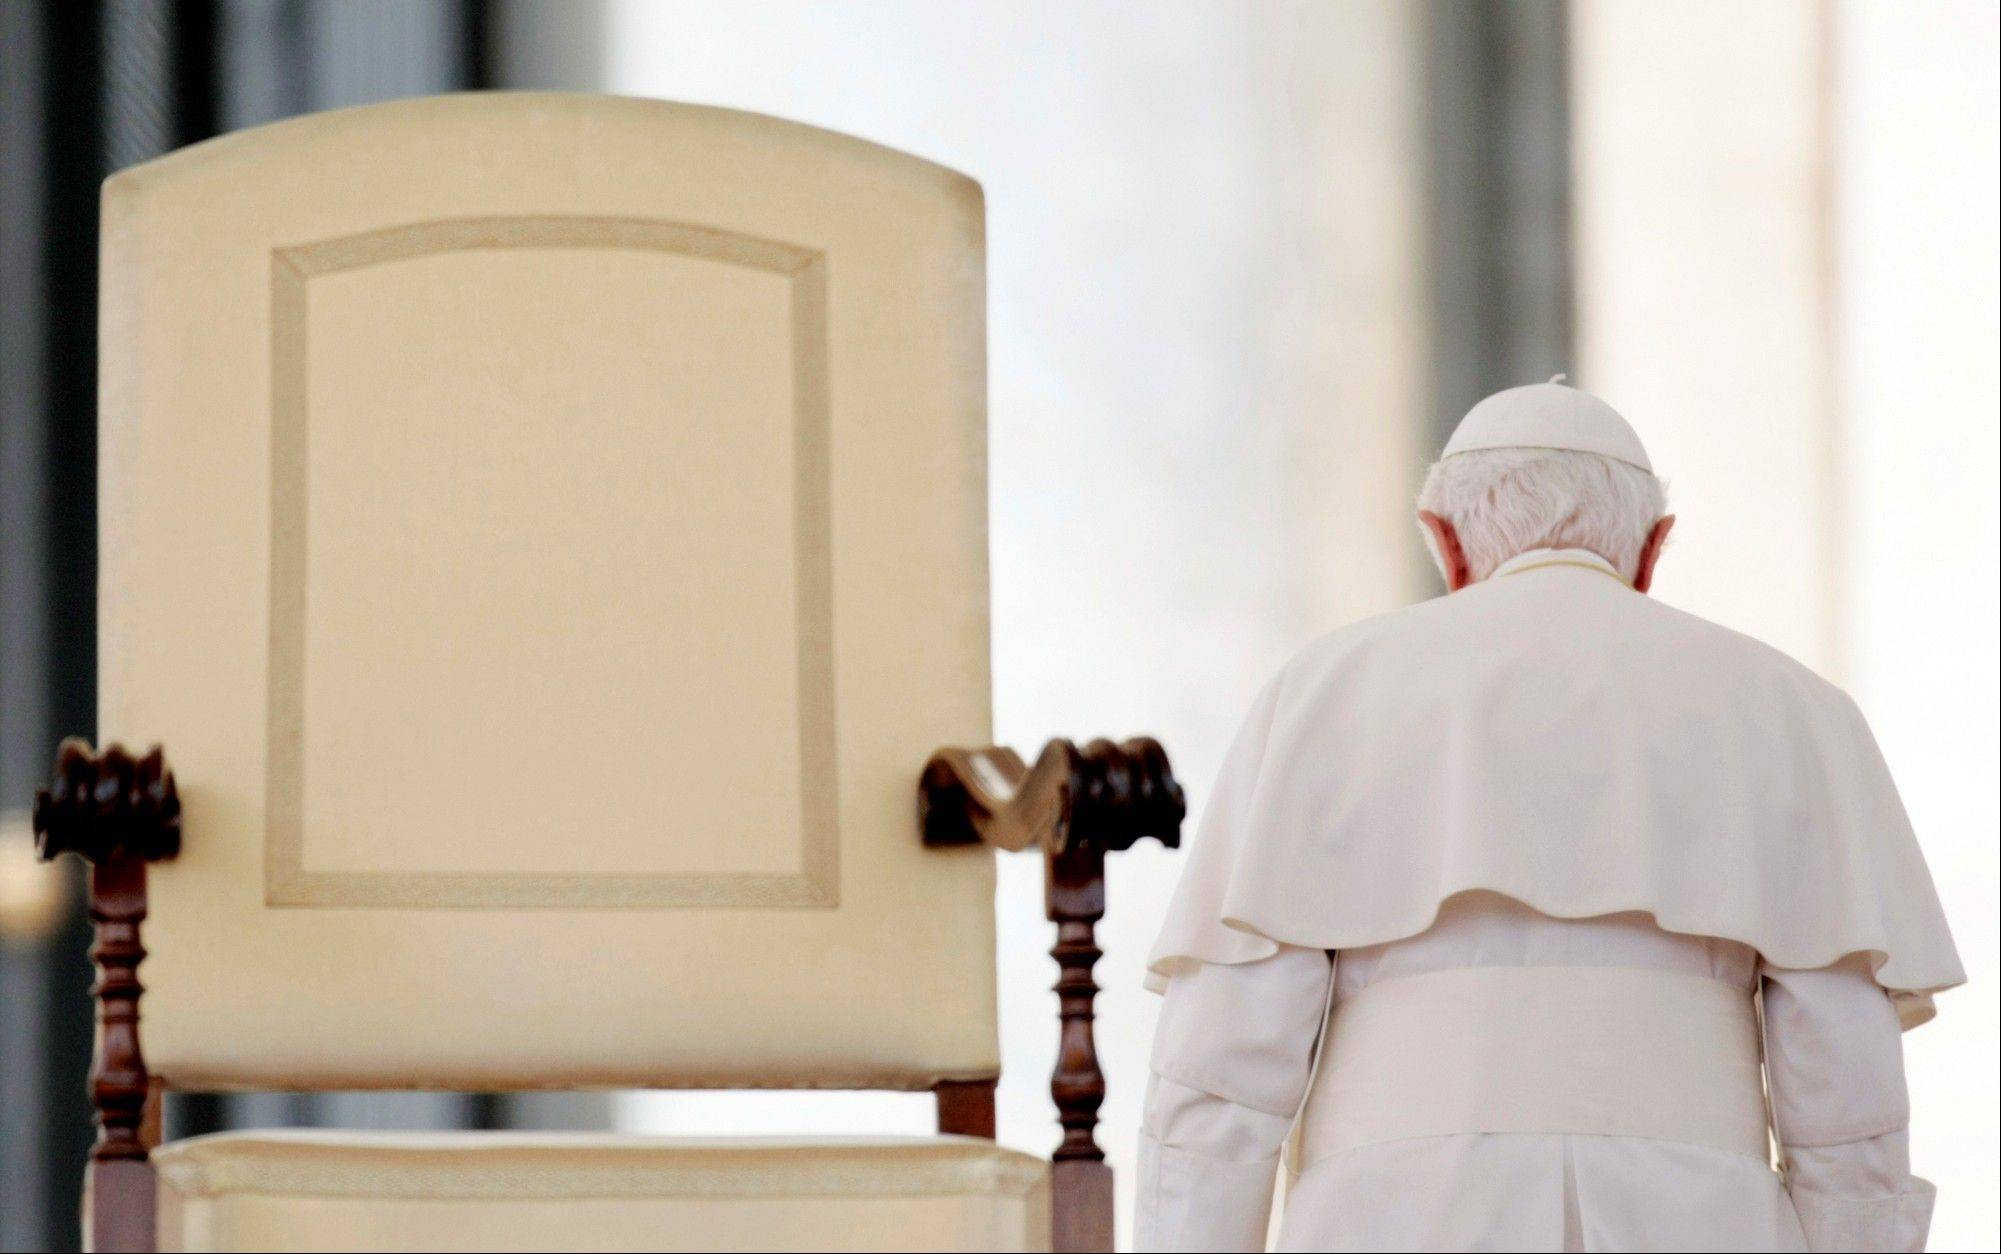 Pope Benedict XVI leaves at the end of his weekly general audience in St. Peter's Square at the Vatican.